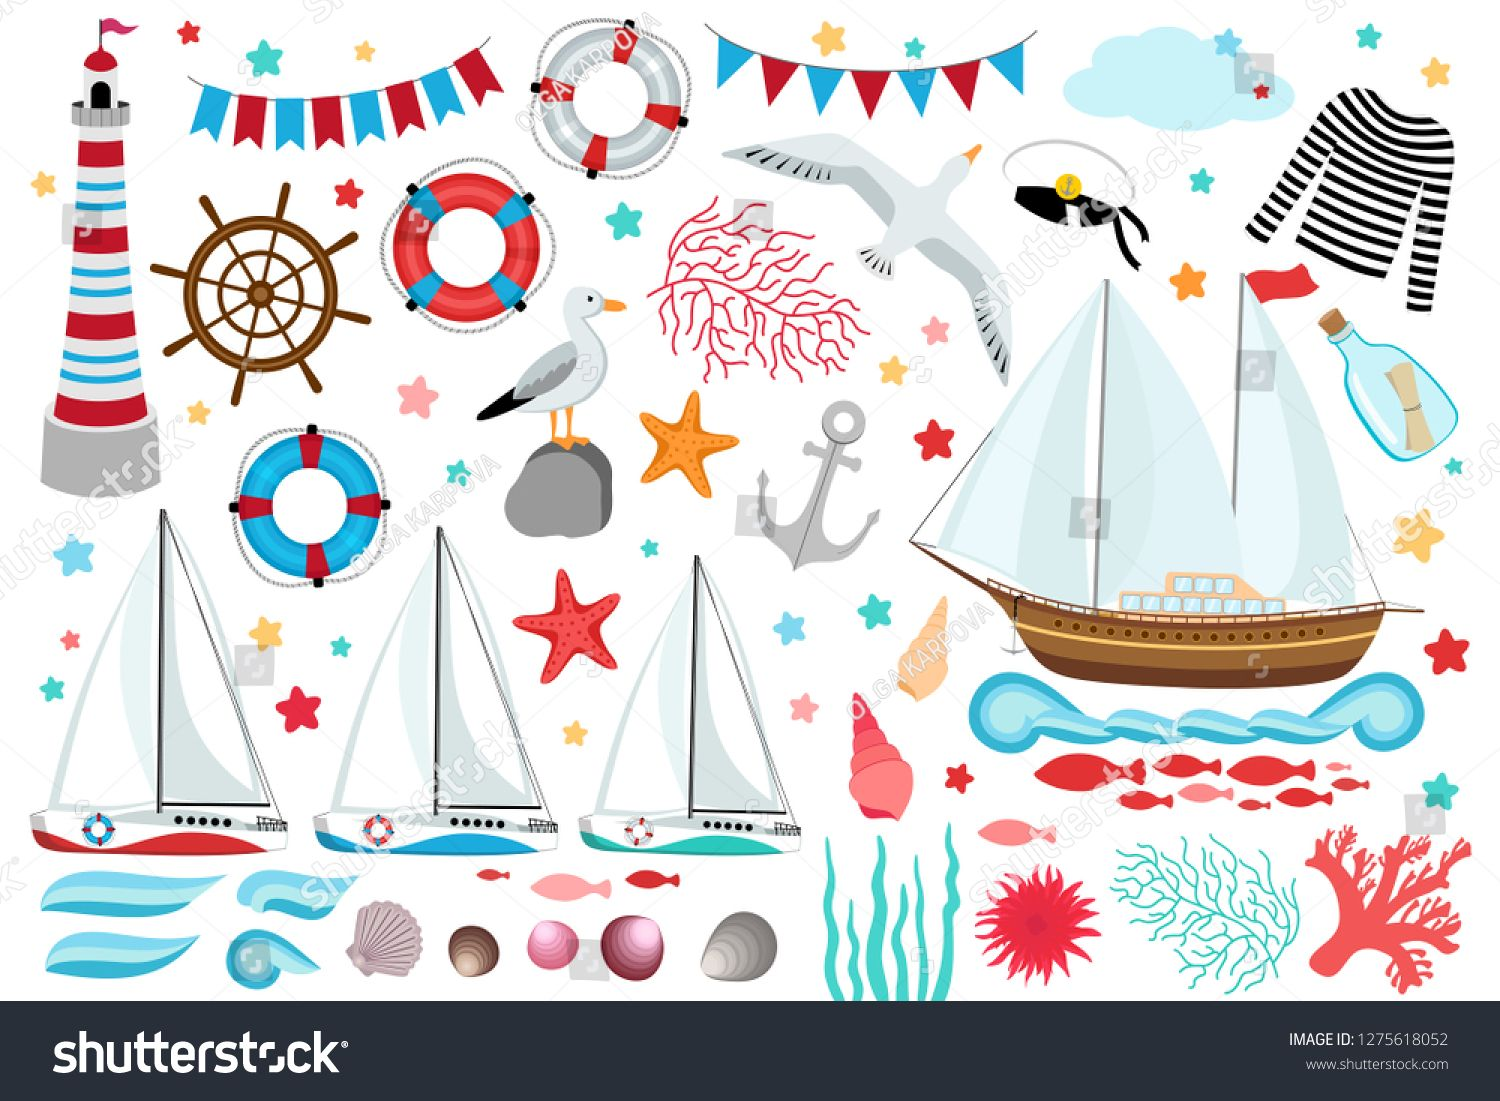 Marine Clip Art Collection Big Set Of Design Elements Ship Yacht Light House Anchor Shell Seagull Seaweed Message In Bottle Clip Art Art Art Collection